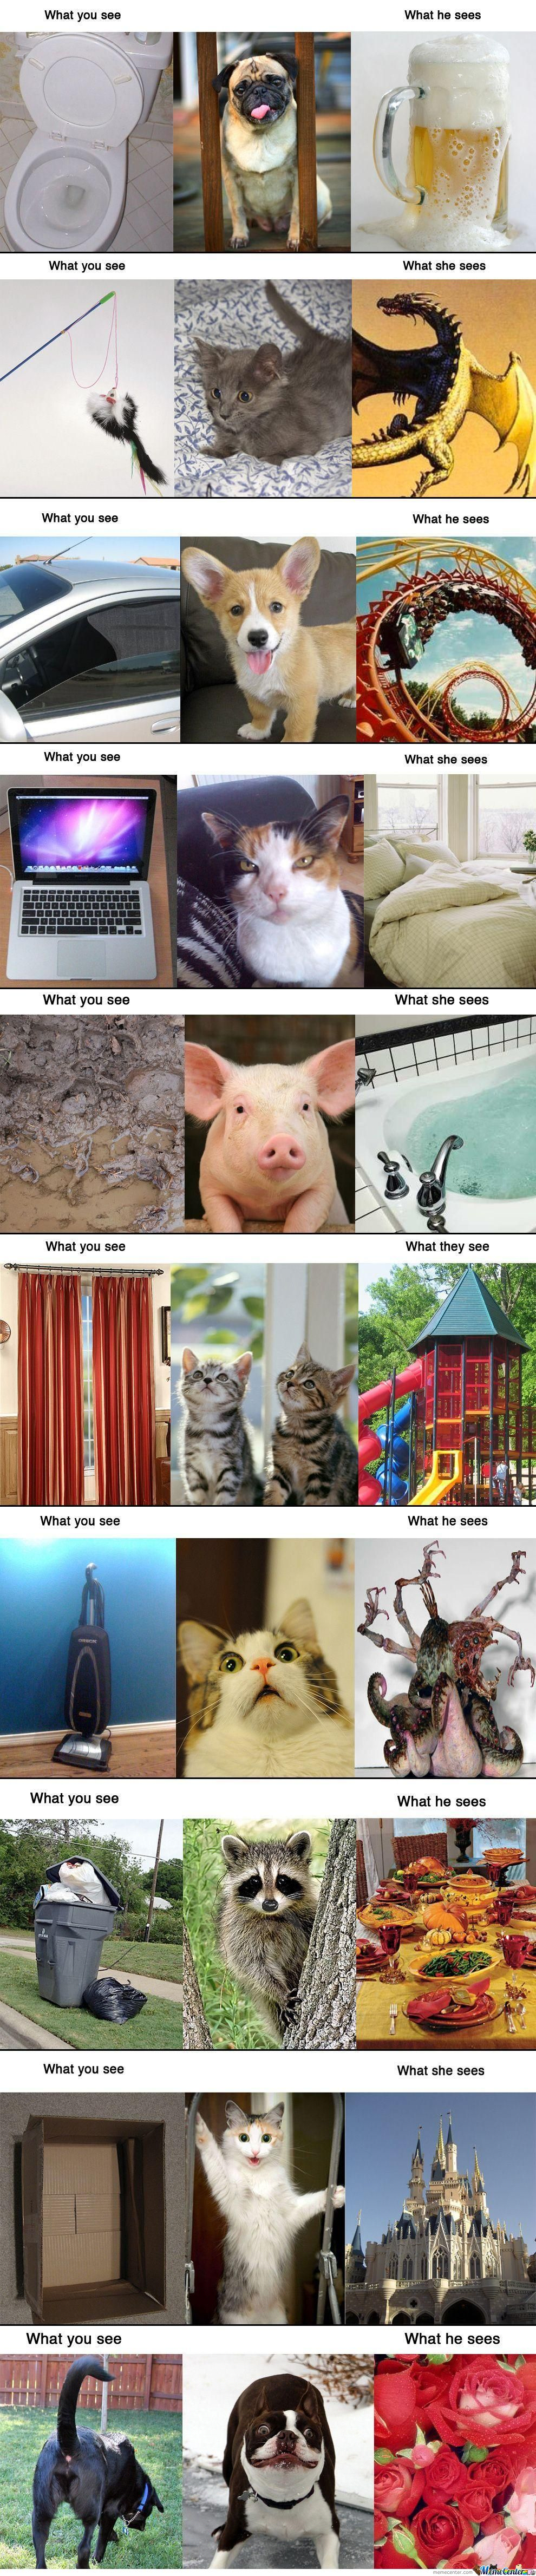 What We See,what Animals See.